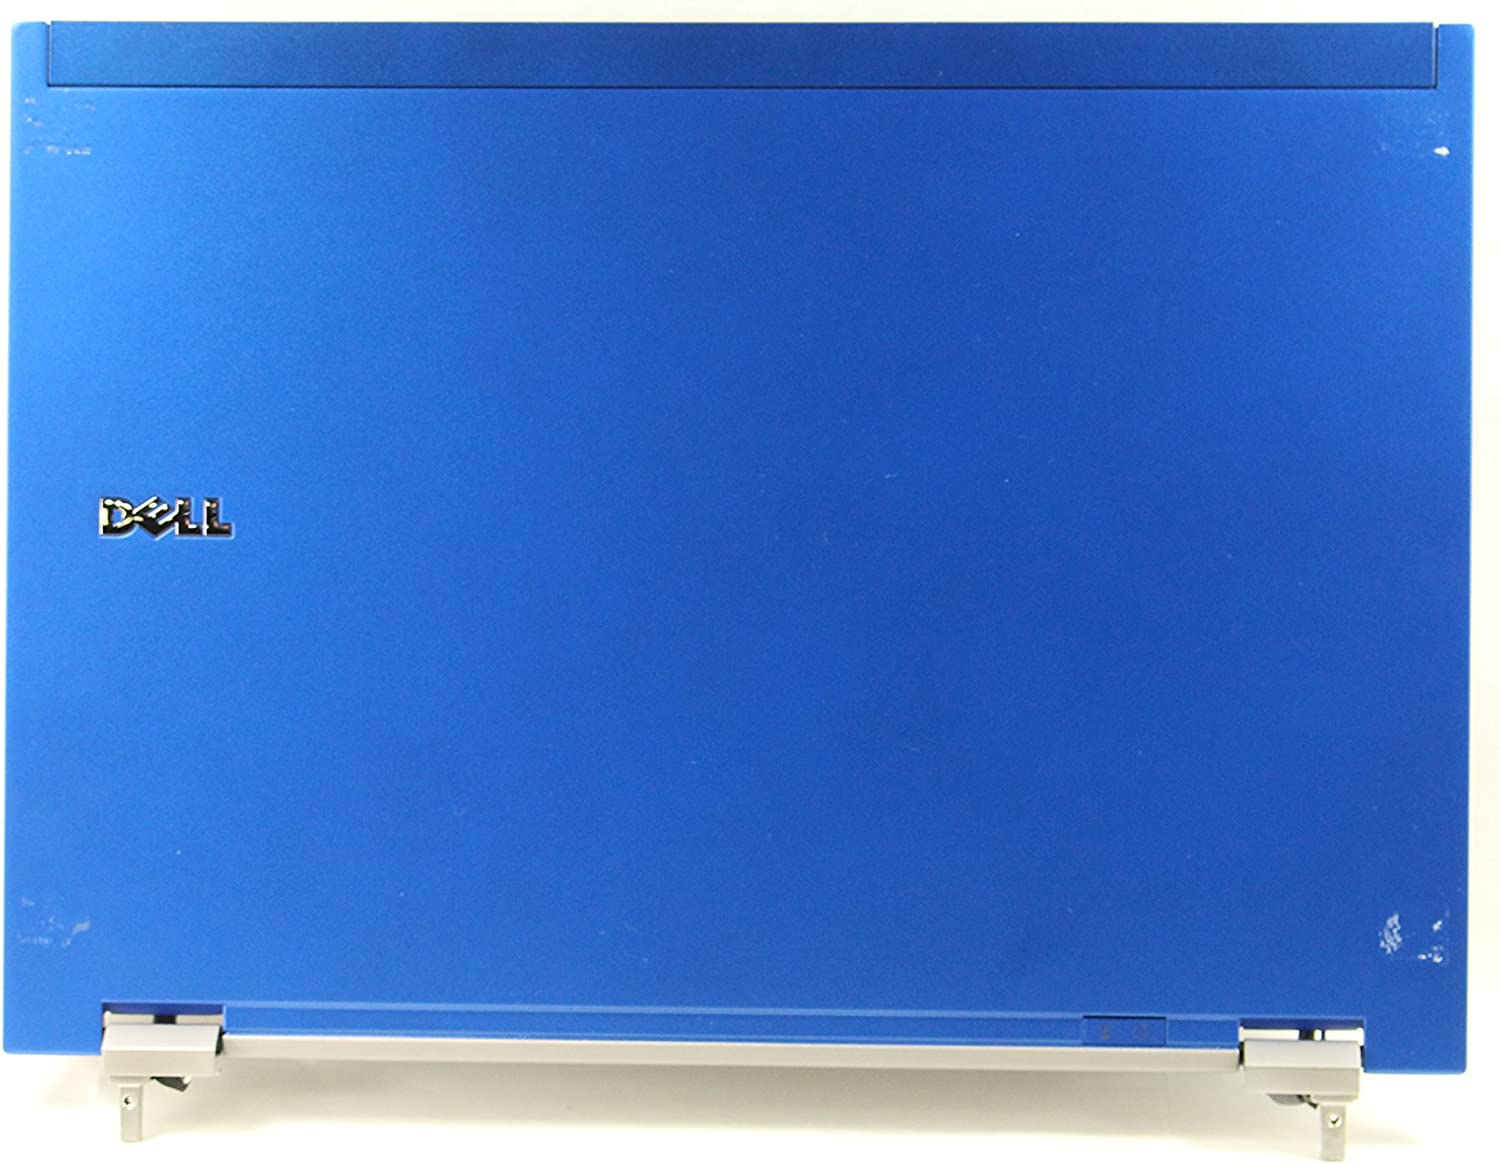 "MT651 - Dell Latitude E6400 14.1""BLUE LCD Back Cover Lid Assembly with Hinges For LED WXGA+ Display- Grade A"